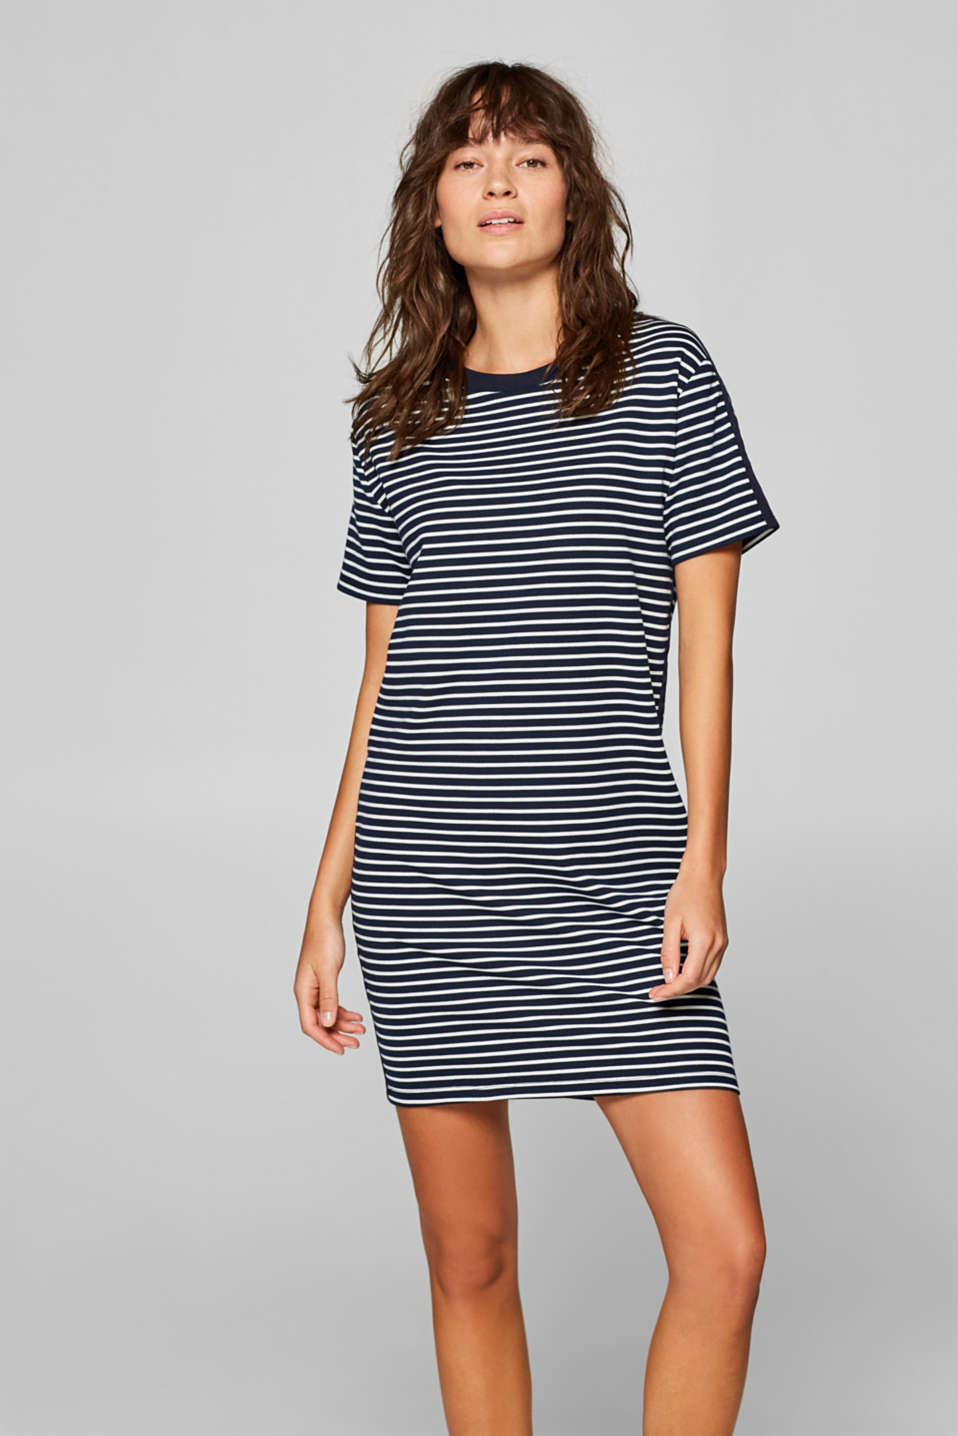 Esprit - Jersey dress with stripes and woven tape trim